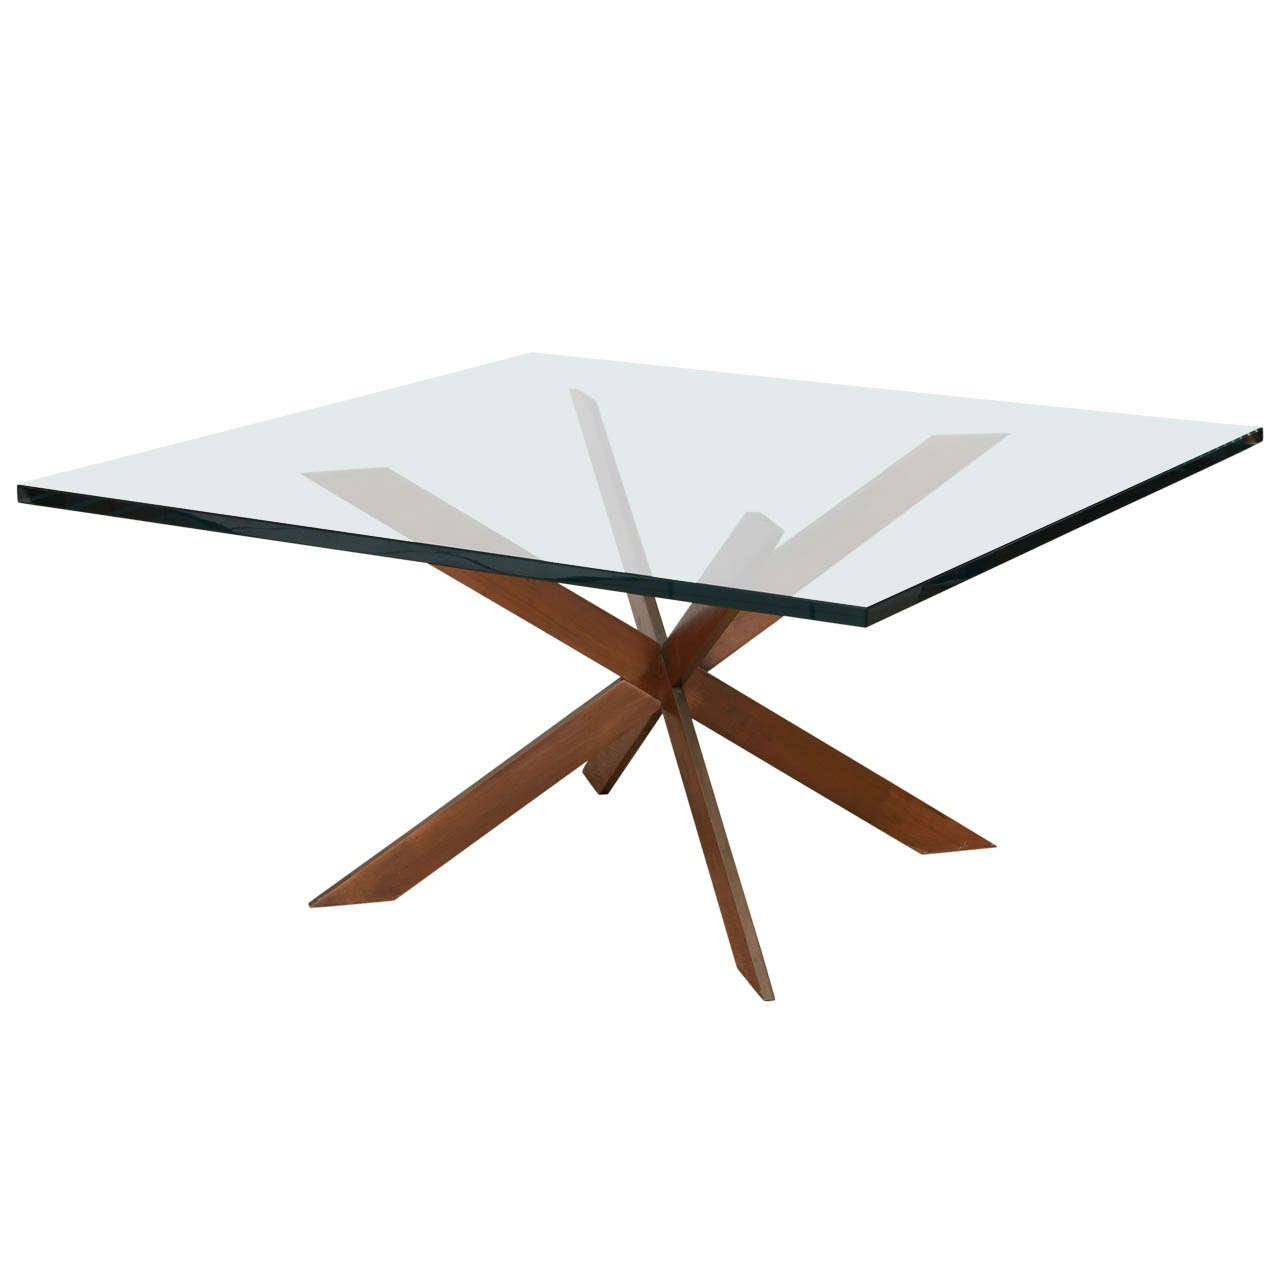 Double Cross Copper Coffee Table For Sale At 1stdibs